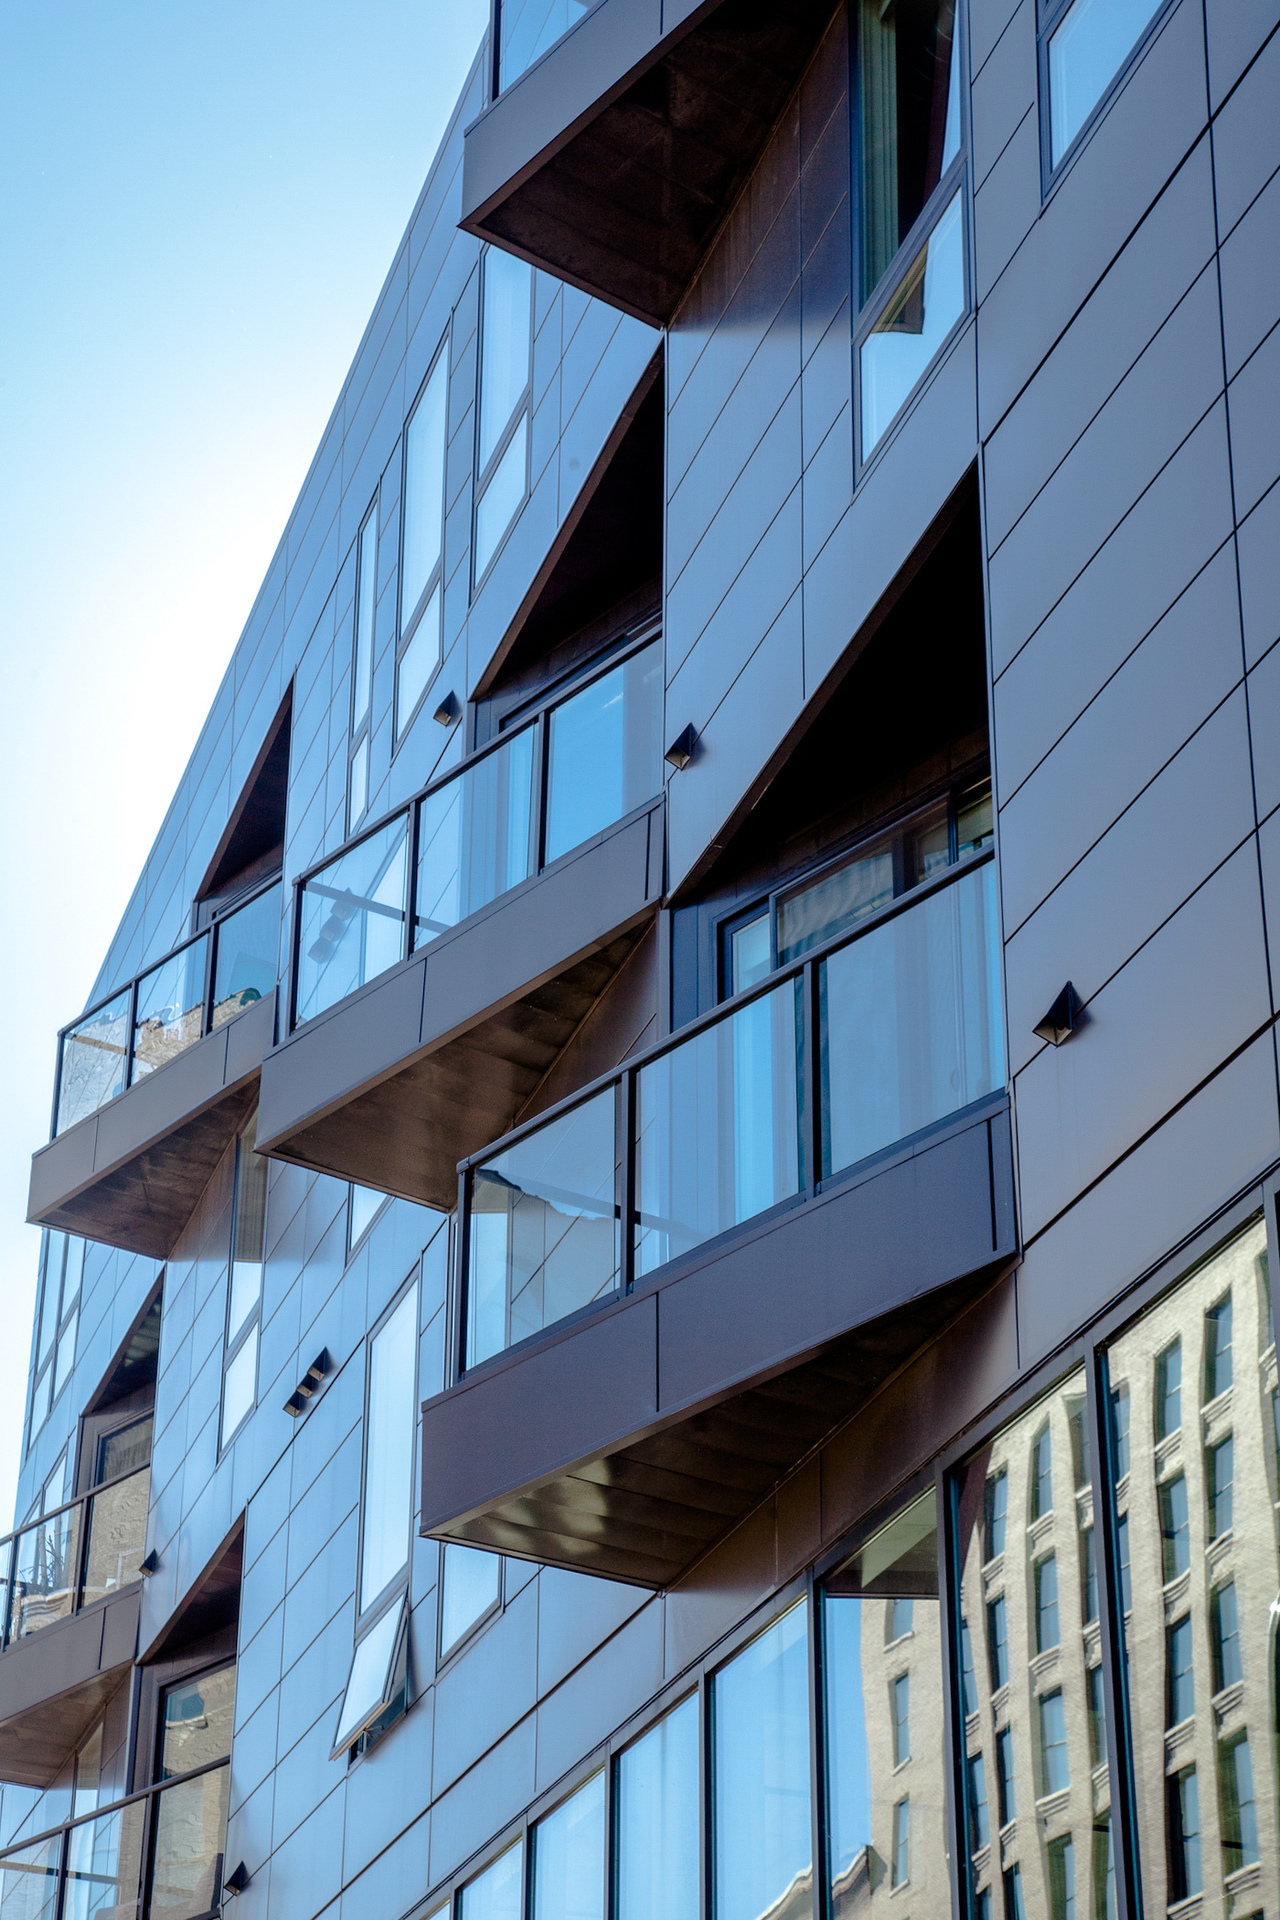 The patio designs at the 915 Washington Avenue North apartments gives the building a unique exterior look. Andersen® Windows provided their 100 Series windows for the project.